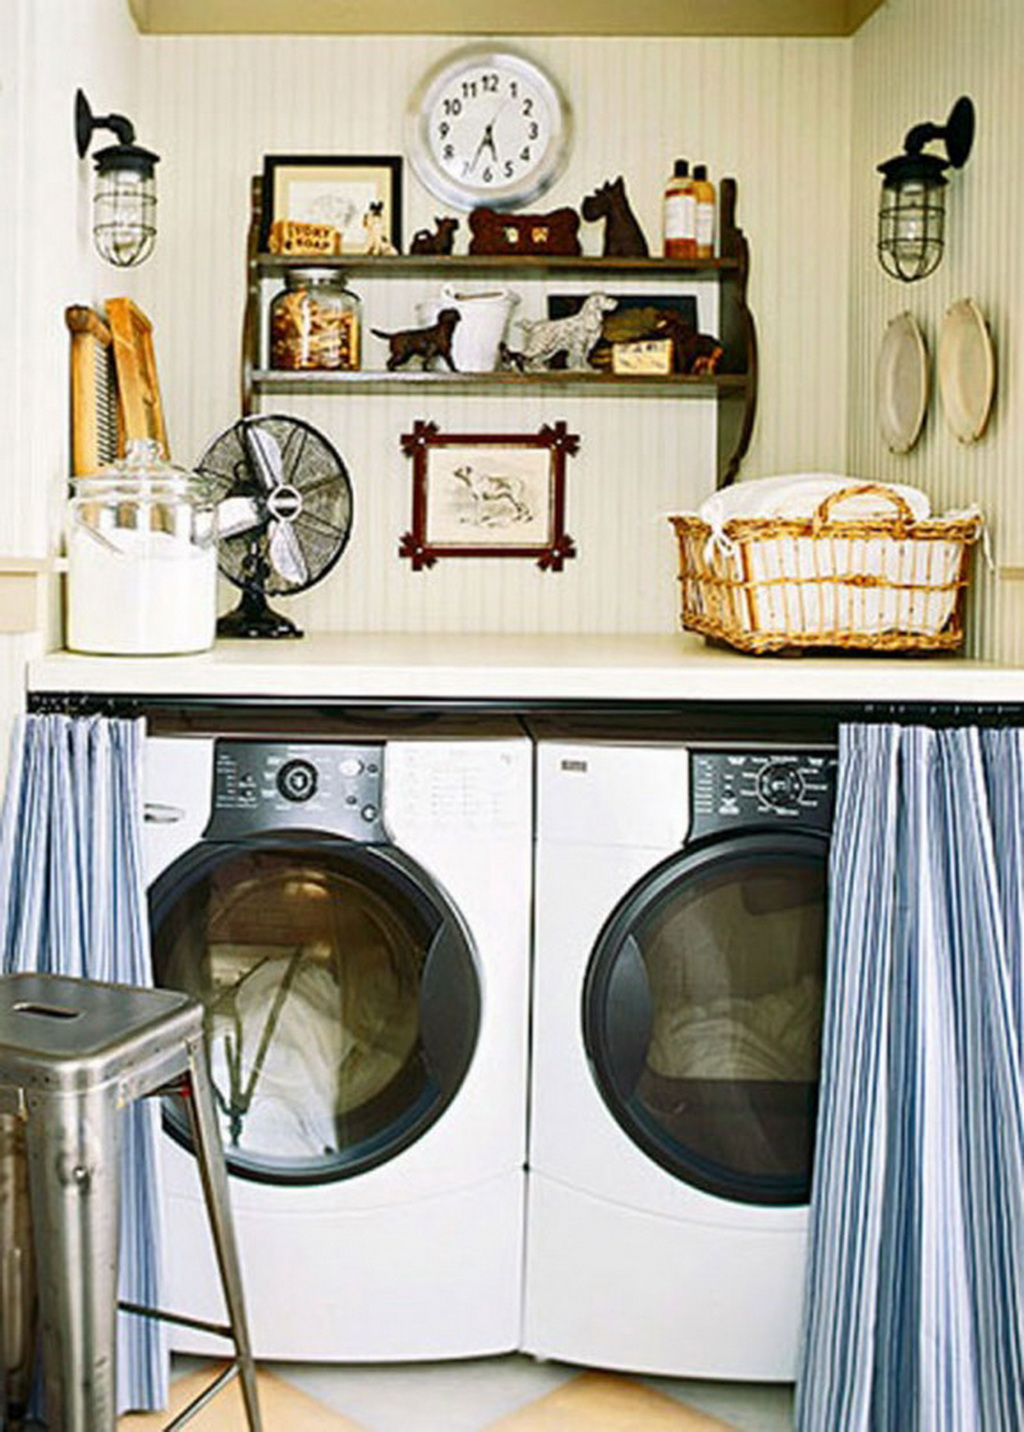 Home Interior Design for make Small Laundry Room Decorating Ideas 3     Assignment 3 plan      Home Interior Design for make Small Laundry Room  Decorating Ideas 3